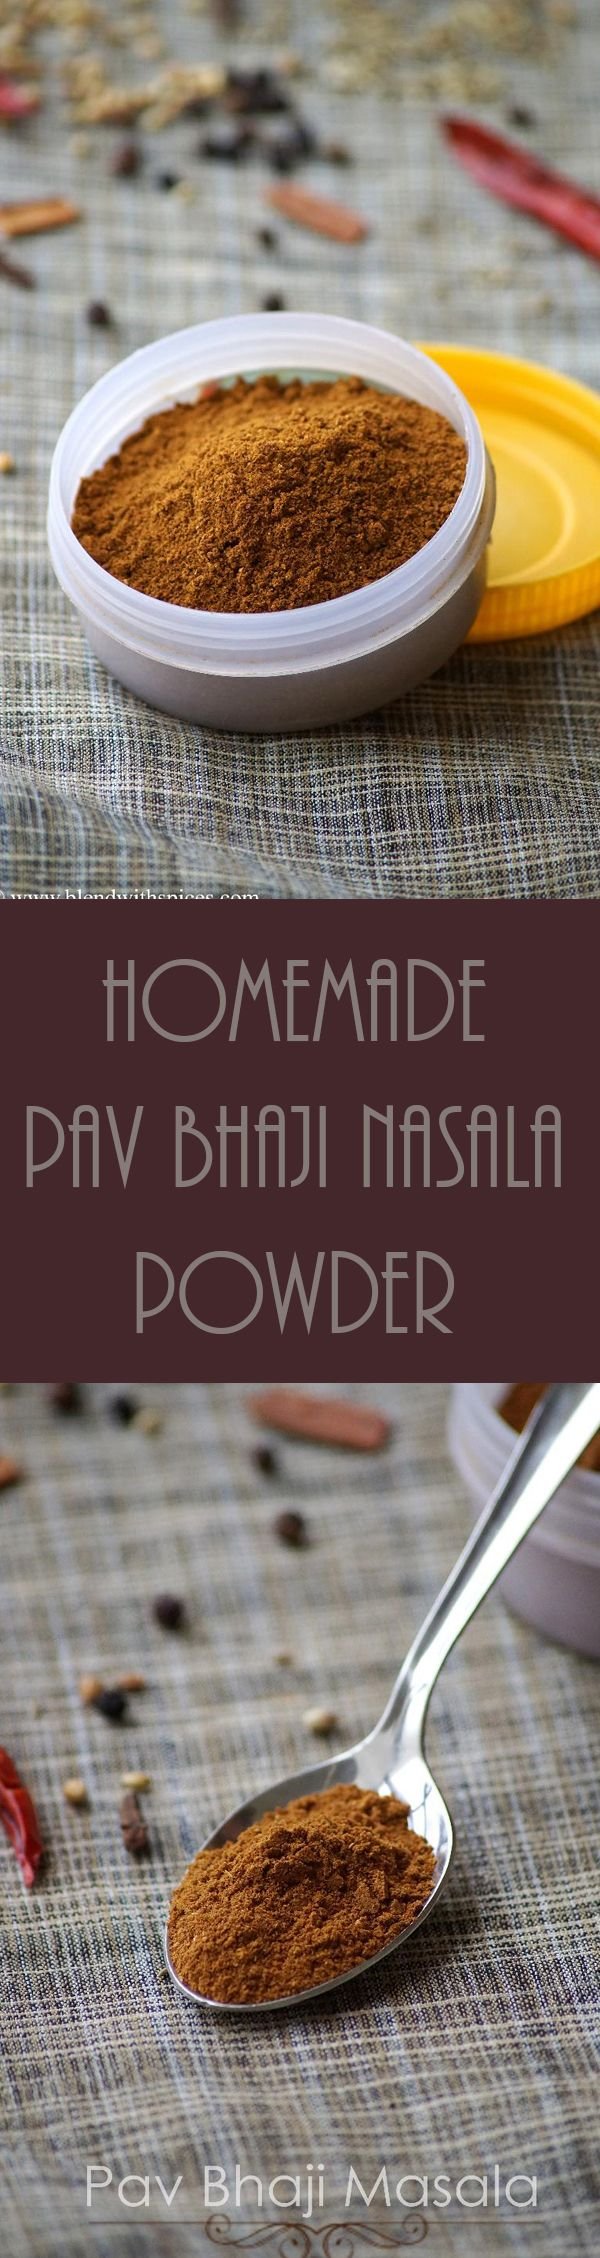 How to make Pav Bhaji Masala Powder at home - Homemade spice blend for pav bhaji, masala pav and tawa pulao. Step by step recipe. blendwithspices.com